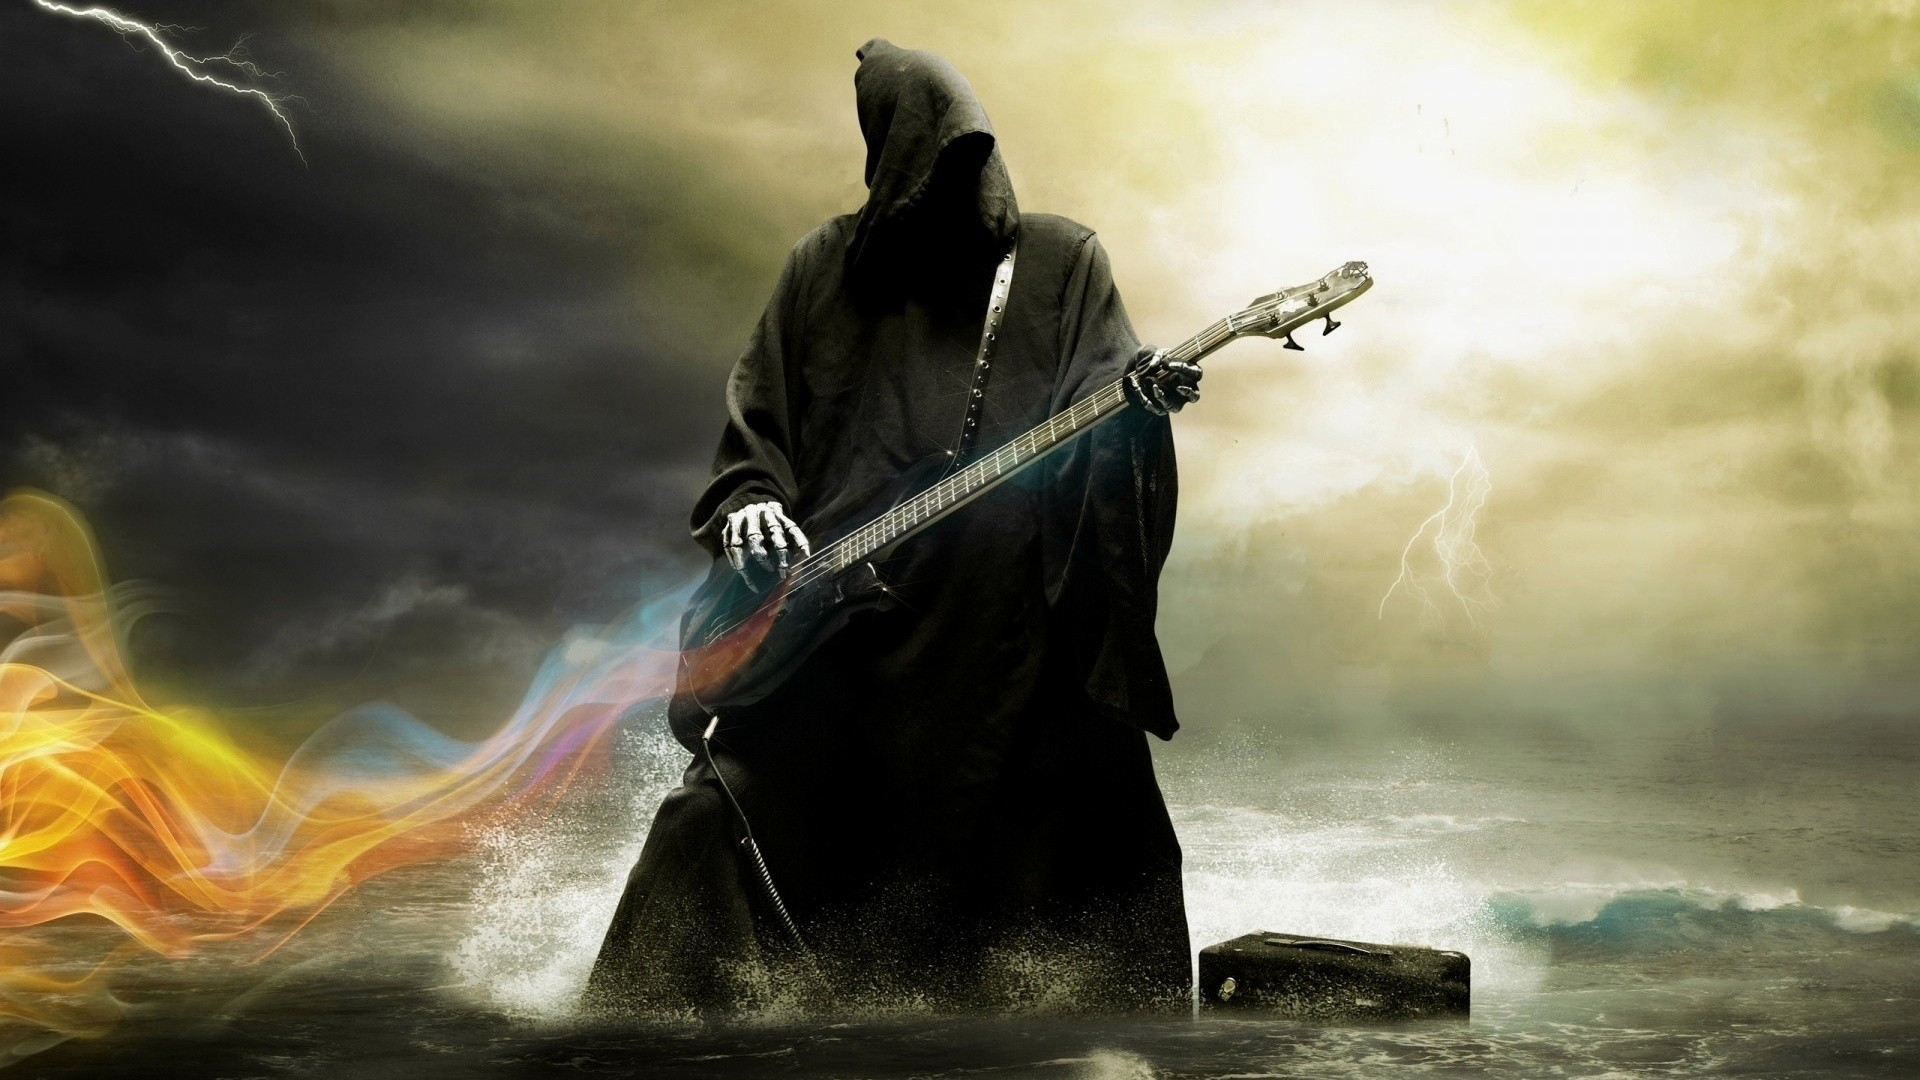 1366x768 Grim Reaper Playing Guitar 1366x768 Resolution Hd 4k Wallpapers Images Backgrounds Photos And Pictures